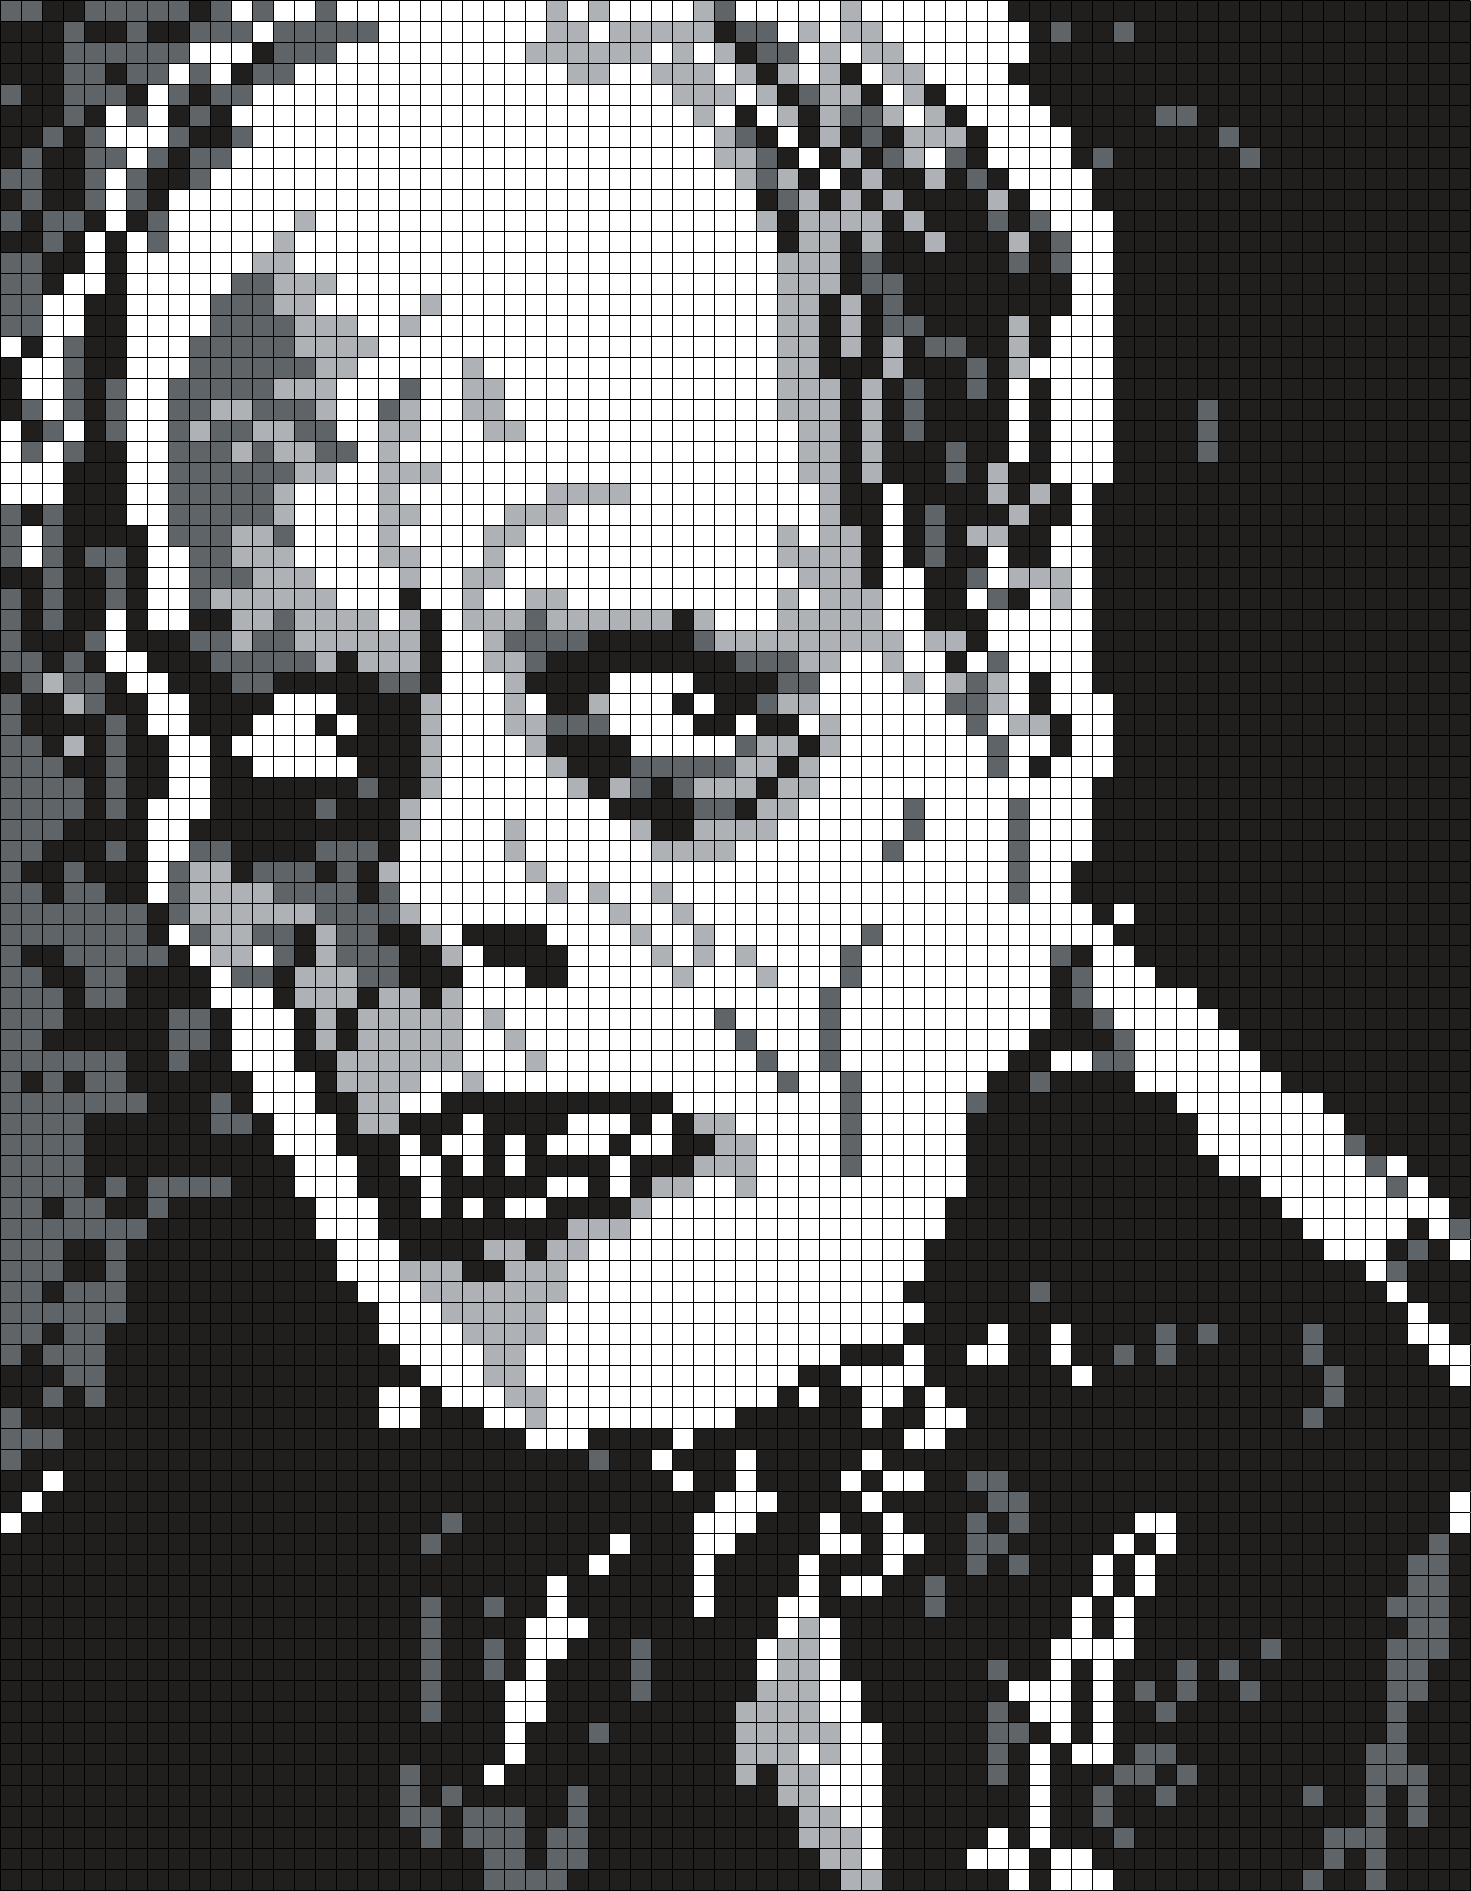 Lon Chaney Sr. As The Phantom Of The Opera